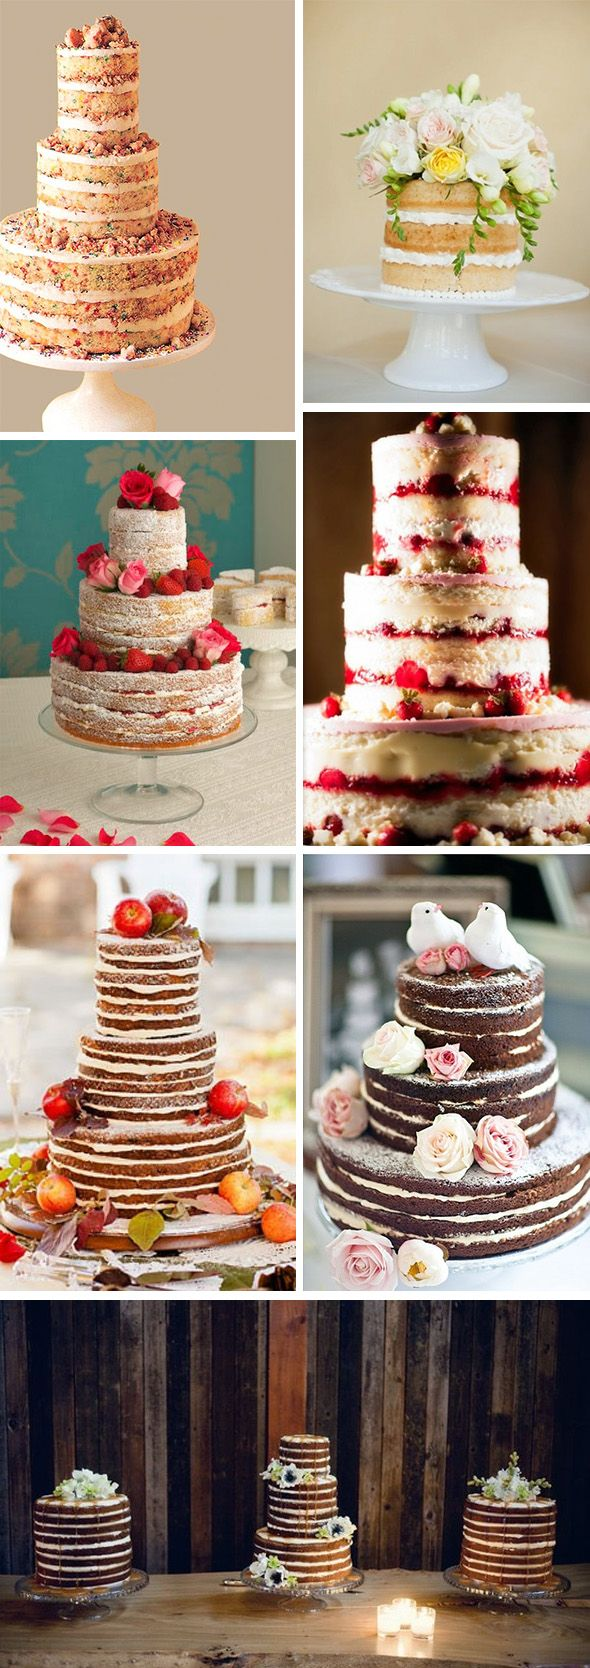 un iced wedding cakes un iced wedding cakes i wouldn t really want one for my 21416